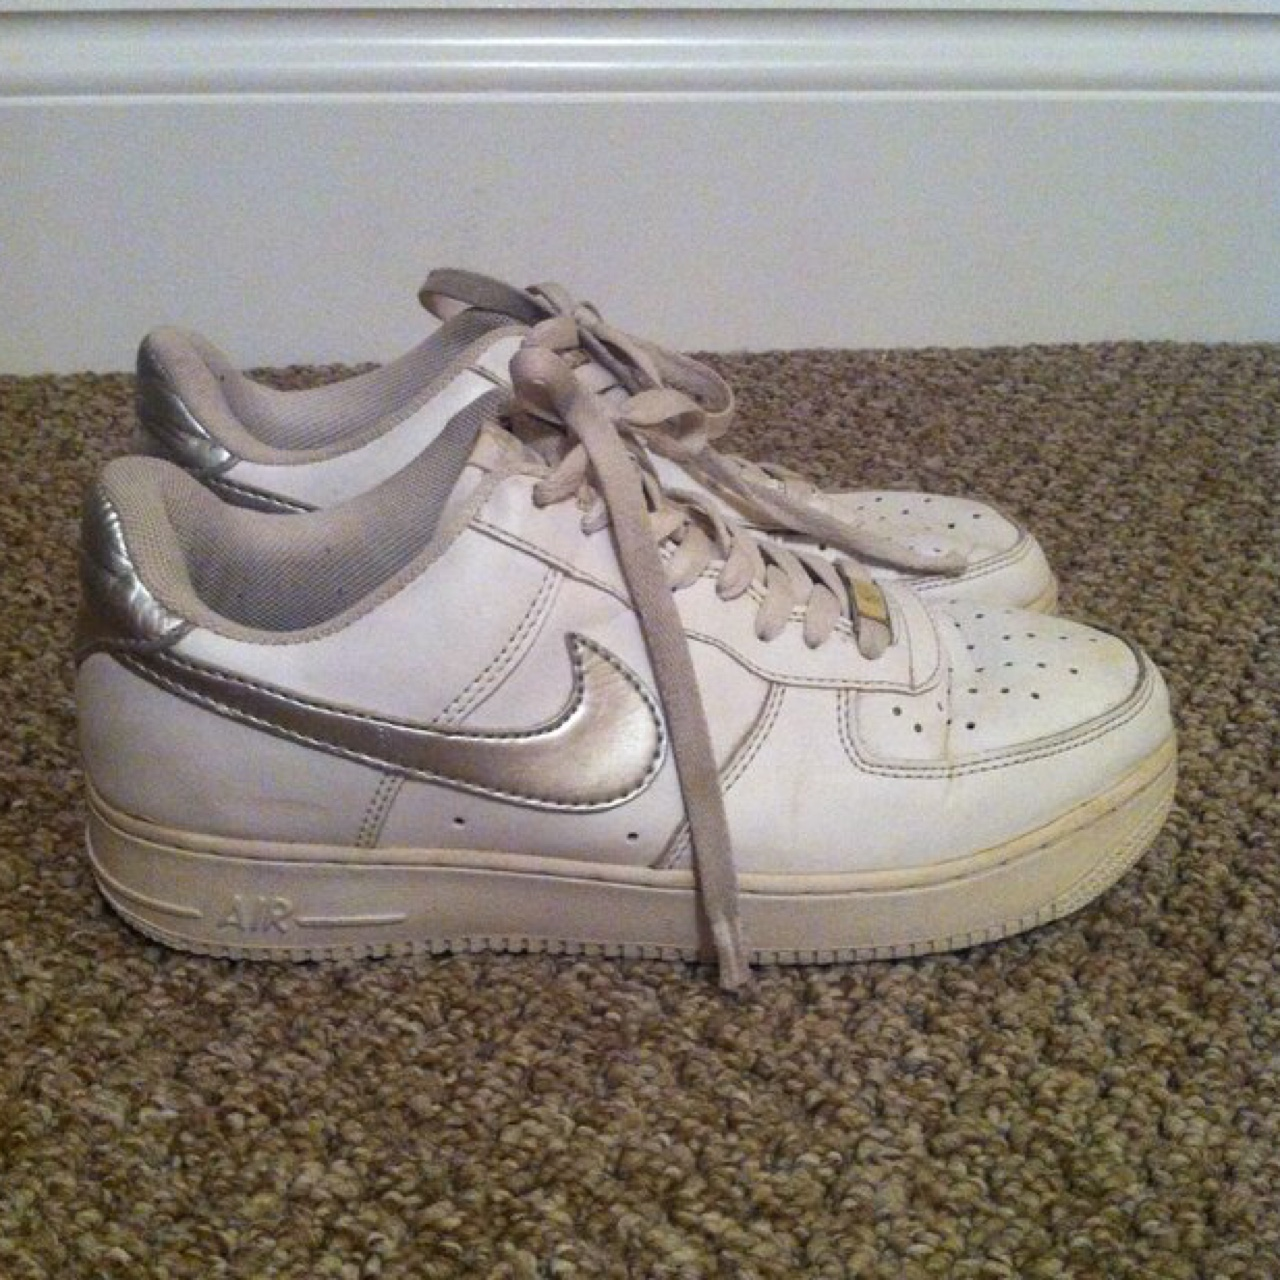 Nike Air Force 1 '82 white with silver